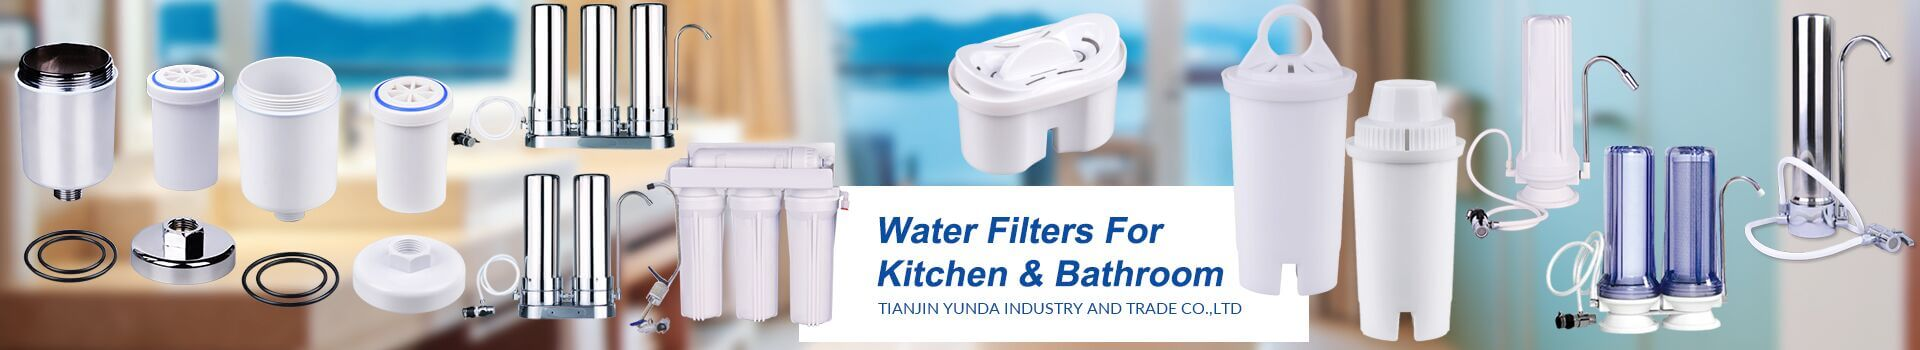 Water Filters For Kitchen & Bathroom